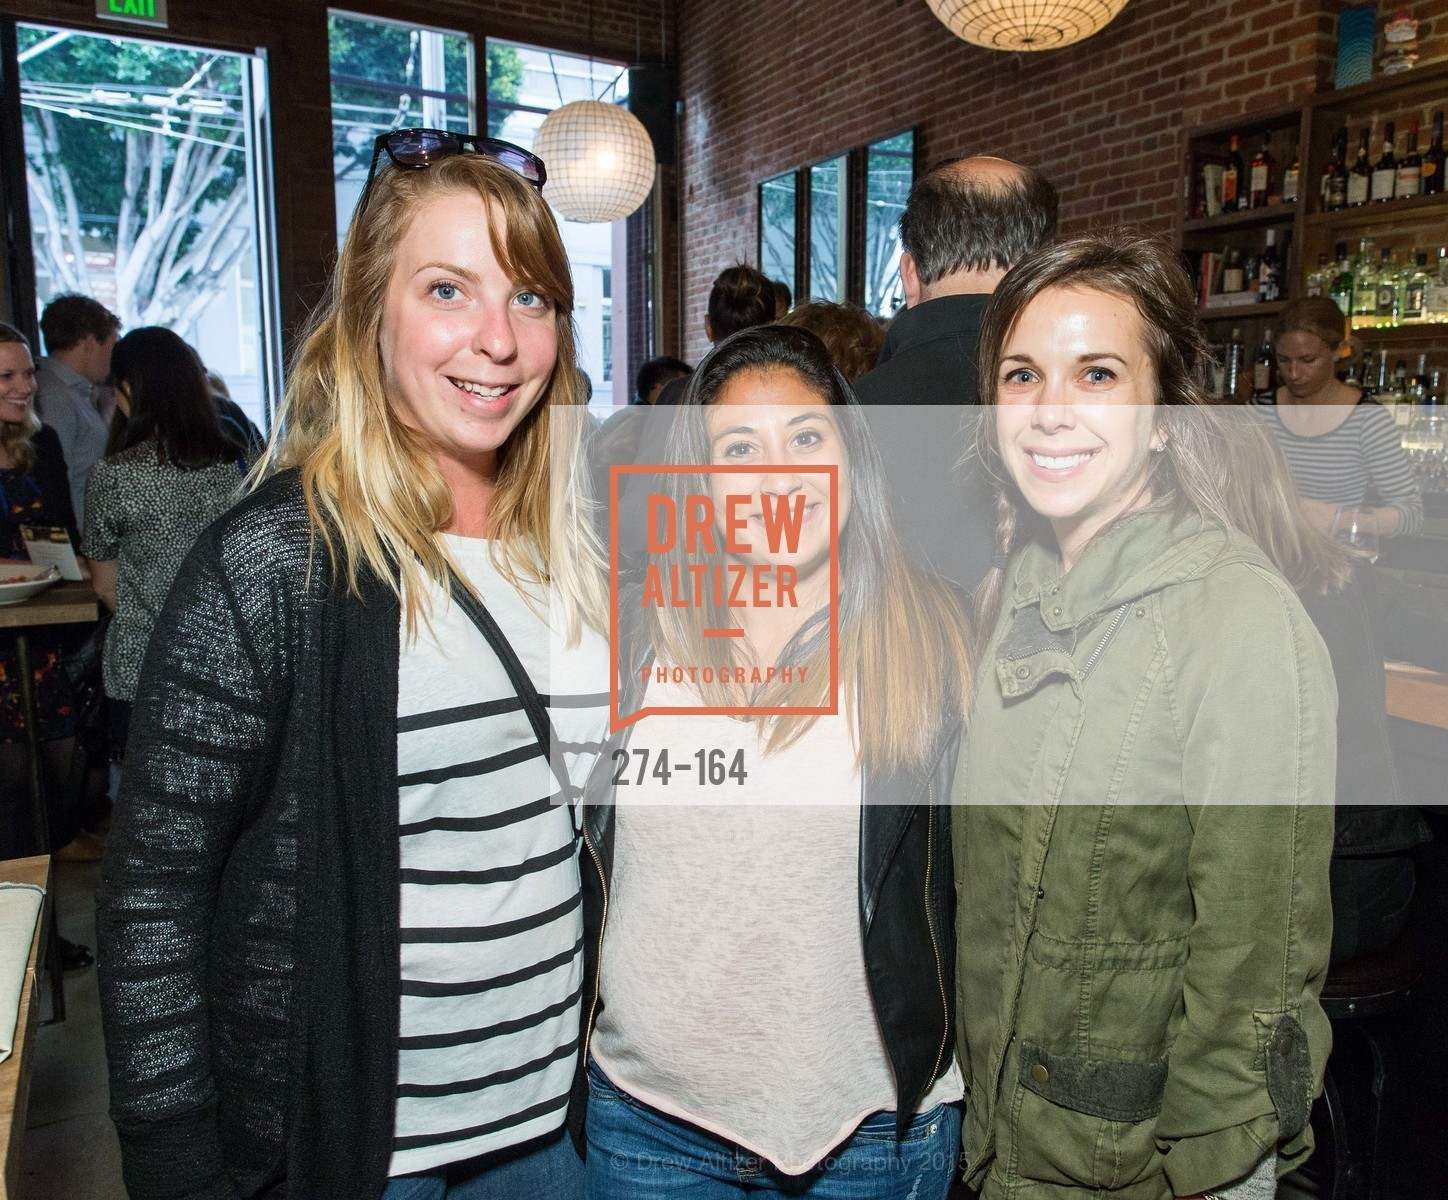 Jen Kraus, Alicia Carrillo, Jessica Cizek, Forgery Bar Opening Celebration, Forgery Bar. 152 Mission St, June 14th, 2015,Drew Altizer, Drew Altizer Photography, full-service event agency, private events, San Francisco photographer, photographer California